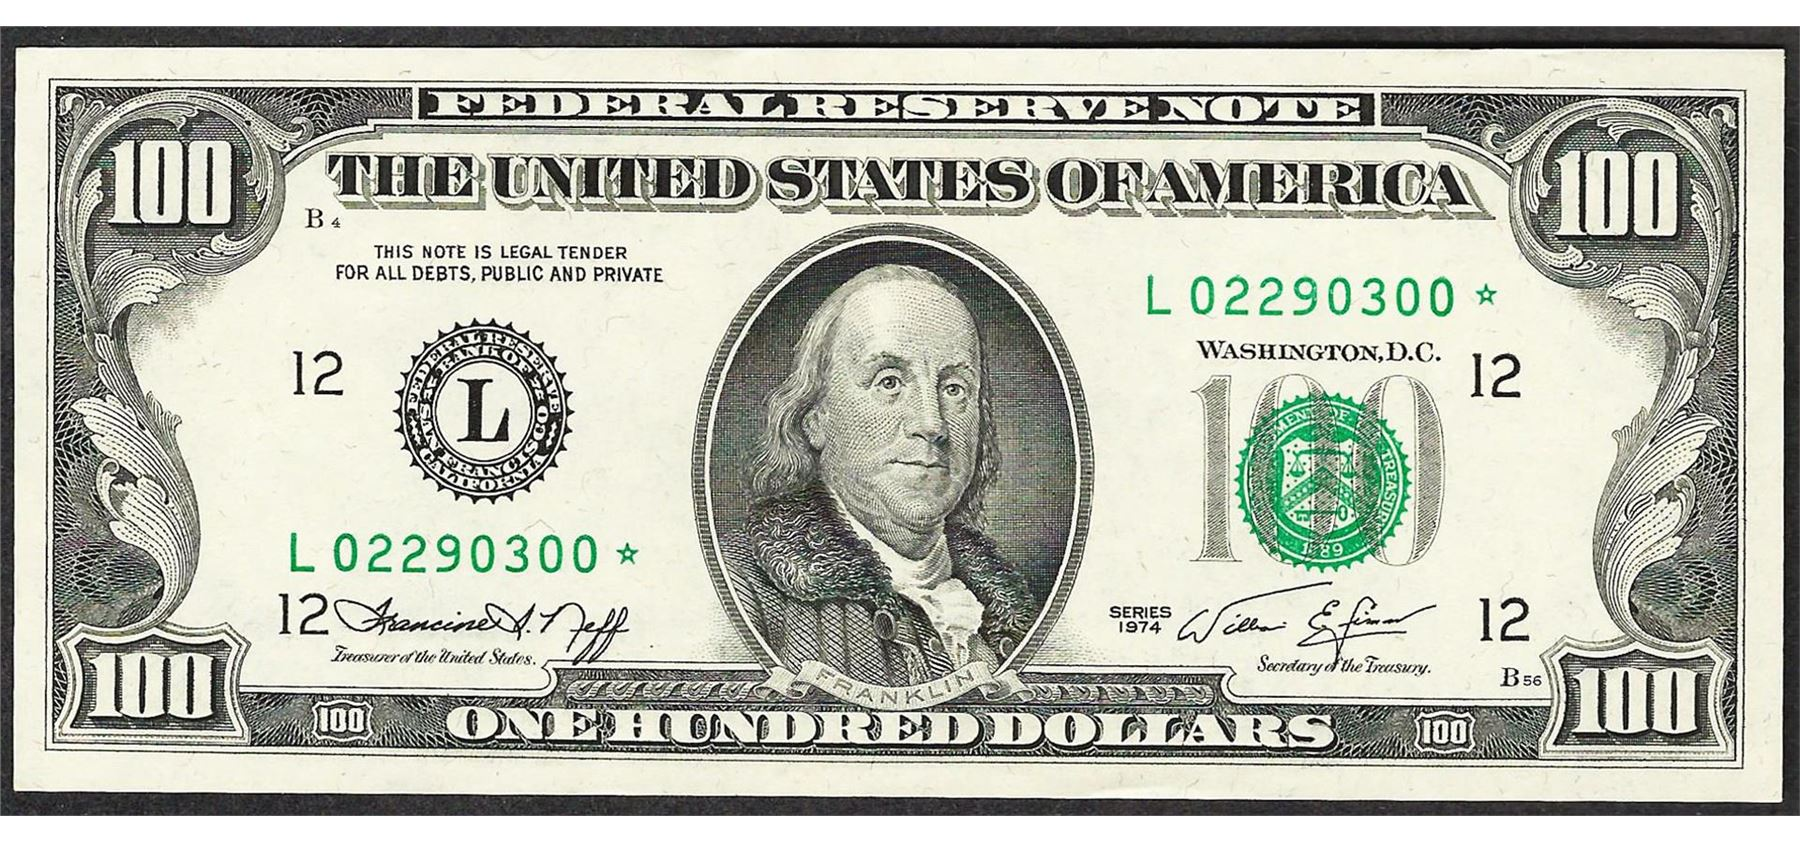 $100 FEDERAL RESERVE STAR NOTE